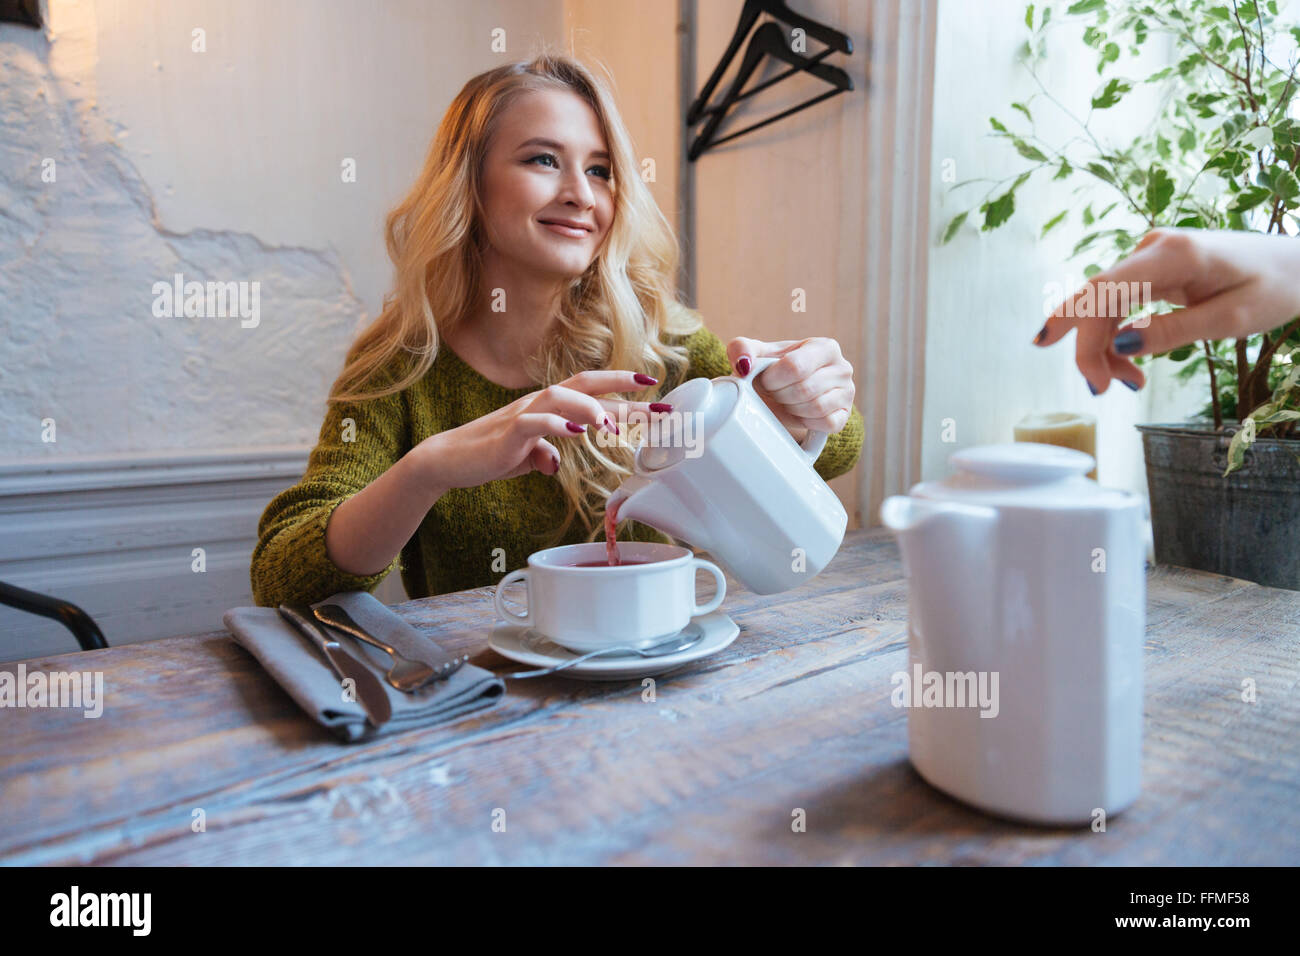 Beautiful young woman drinking tea in cafe - Stock Image